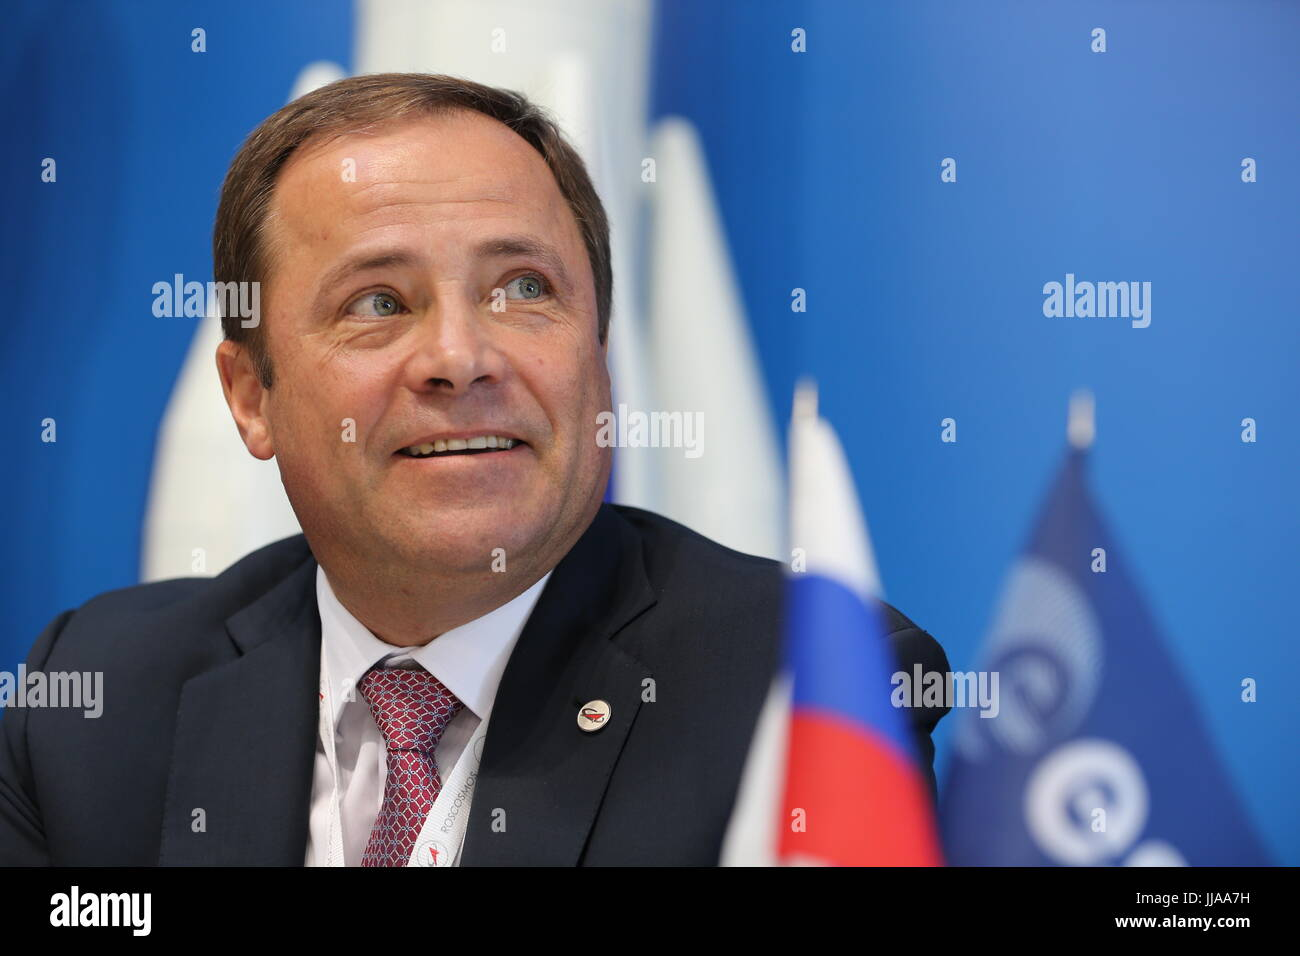 Moscow Region, Russia. 19th July, 2017. Roscosmos Director General Igor Komarov attends a ceremony to sign a cooperation - Stock Image